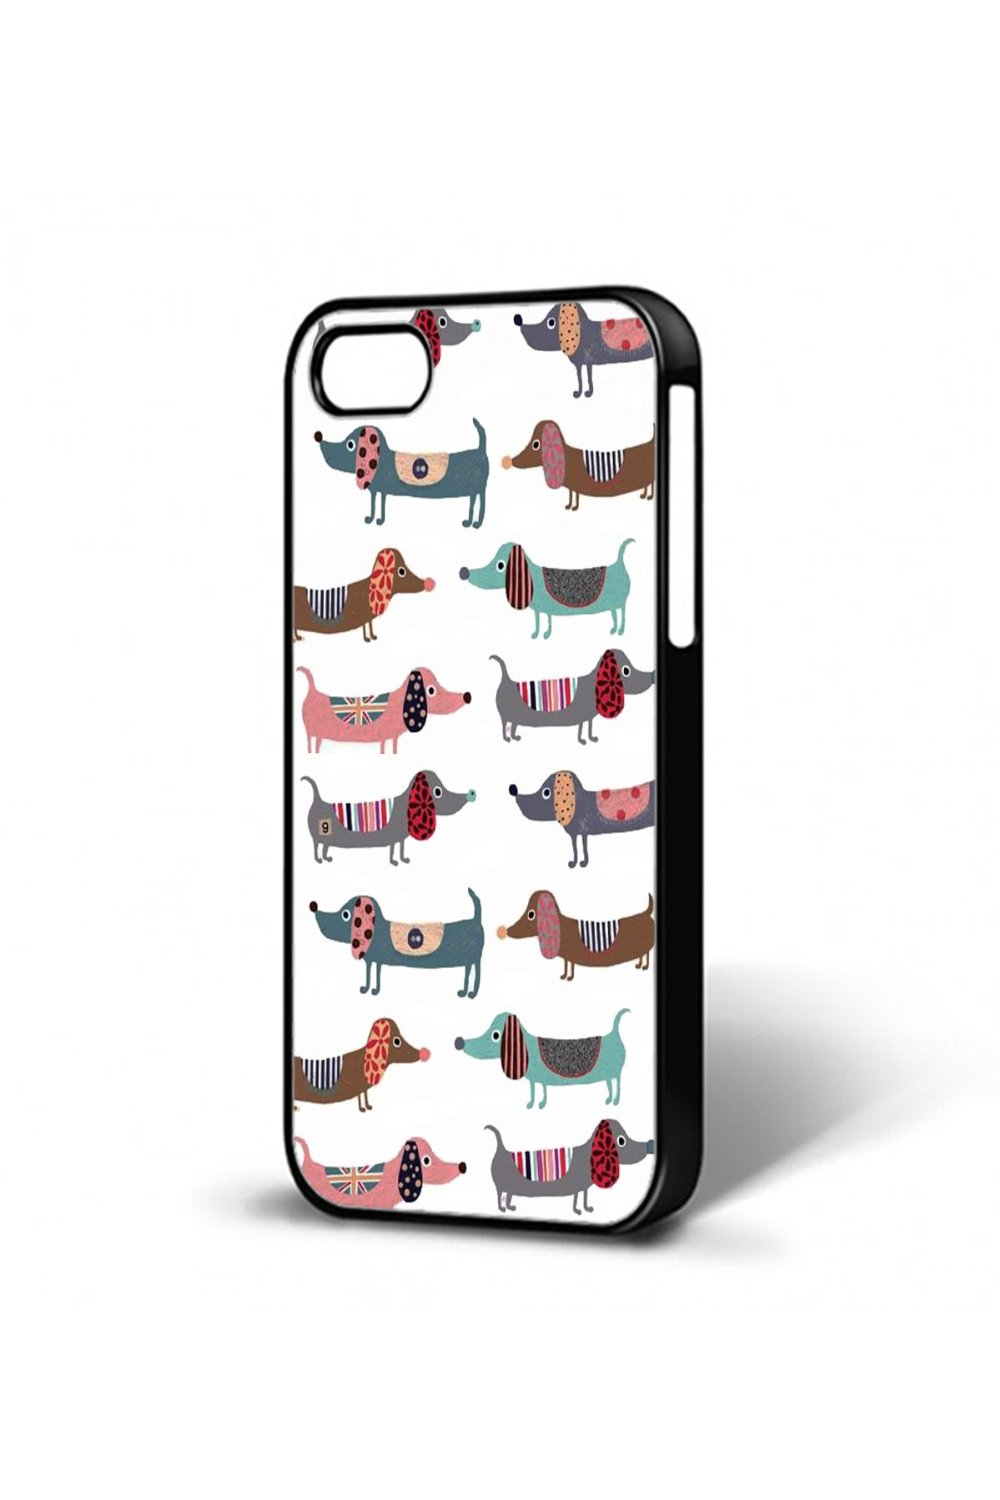 http://www.amazon.fr/Coque-iPhone-Motif-chien-scottie/dp/B00IONUIOS/ref=pd_sim_k_10?ie=UTF8&refRID=021VYK54J1N37NGDVWKB